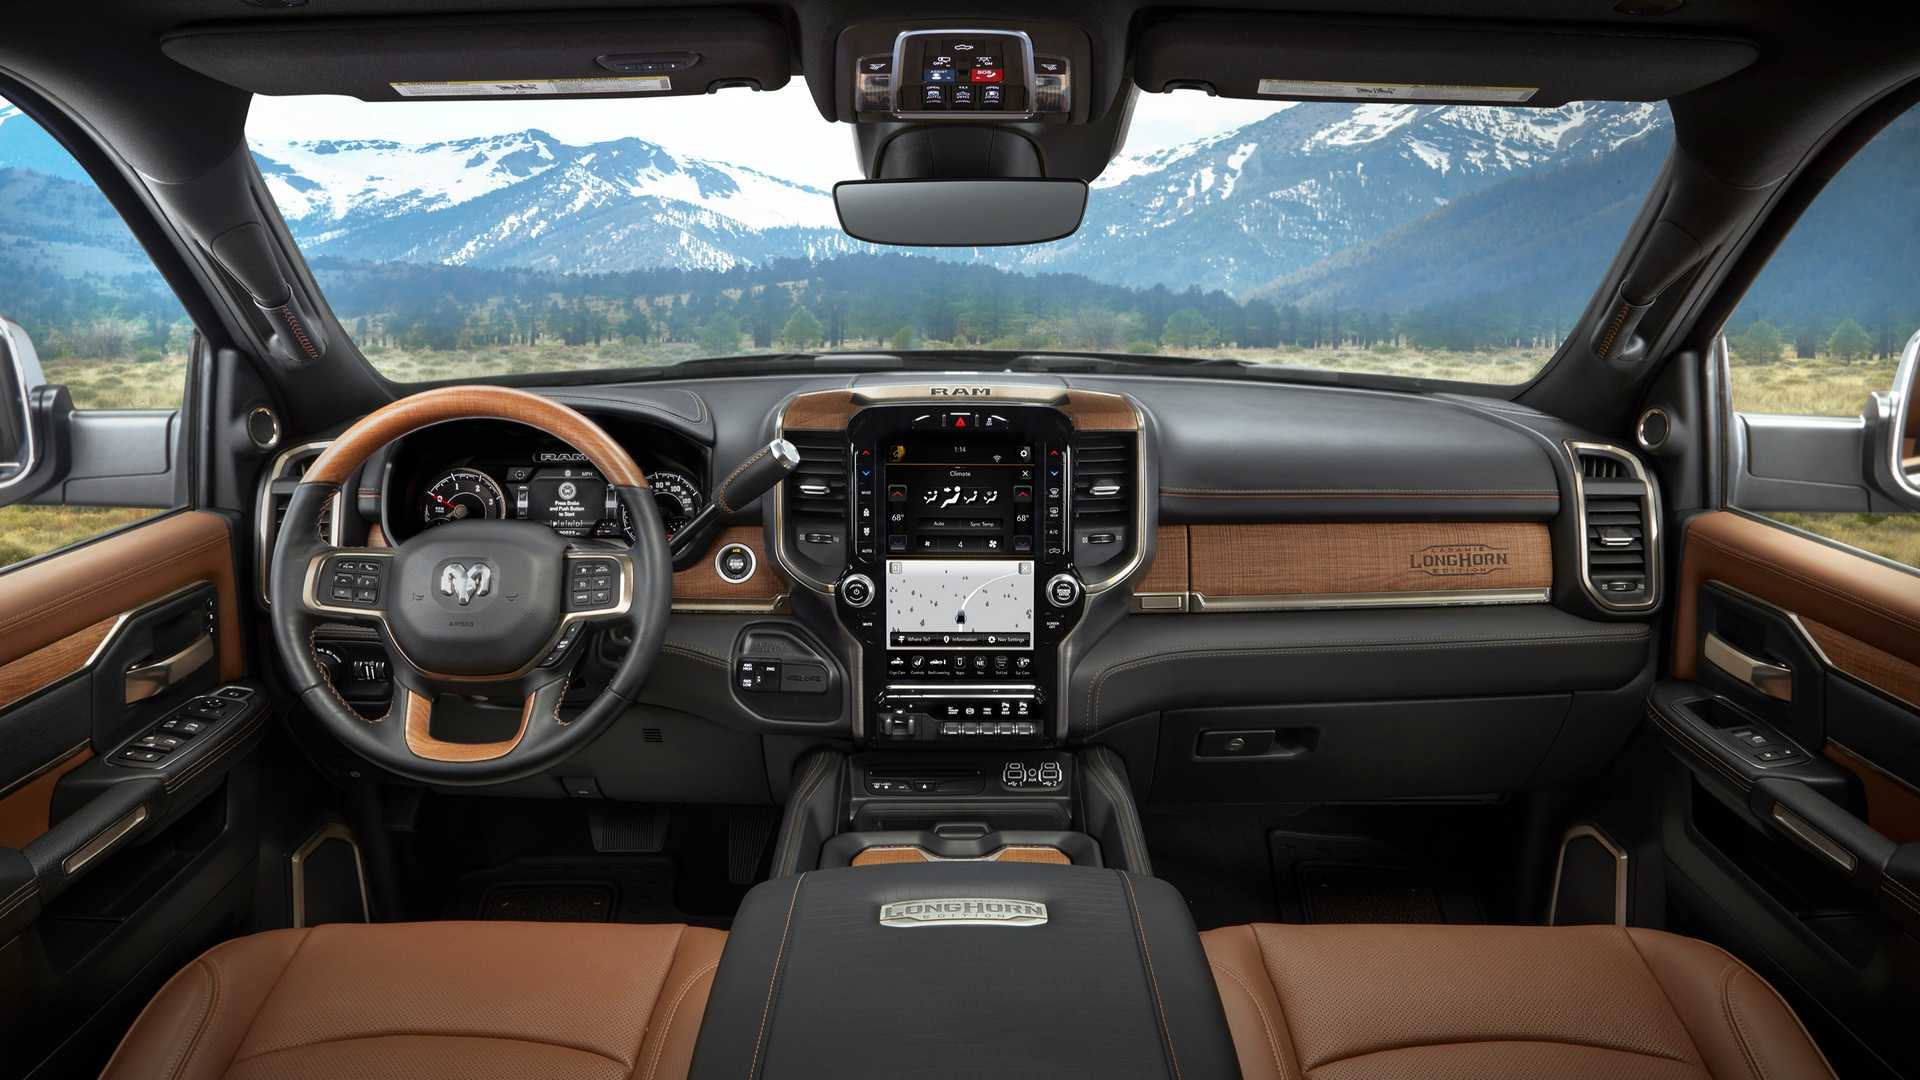 2019 Ram Hd Laramie Longhorn Is A Leather Wrapped Workhorse